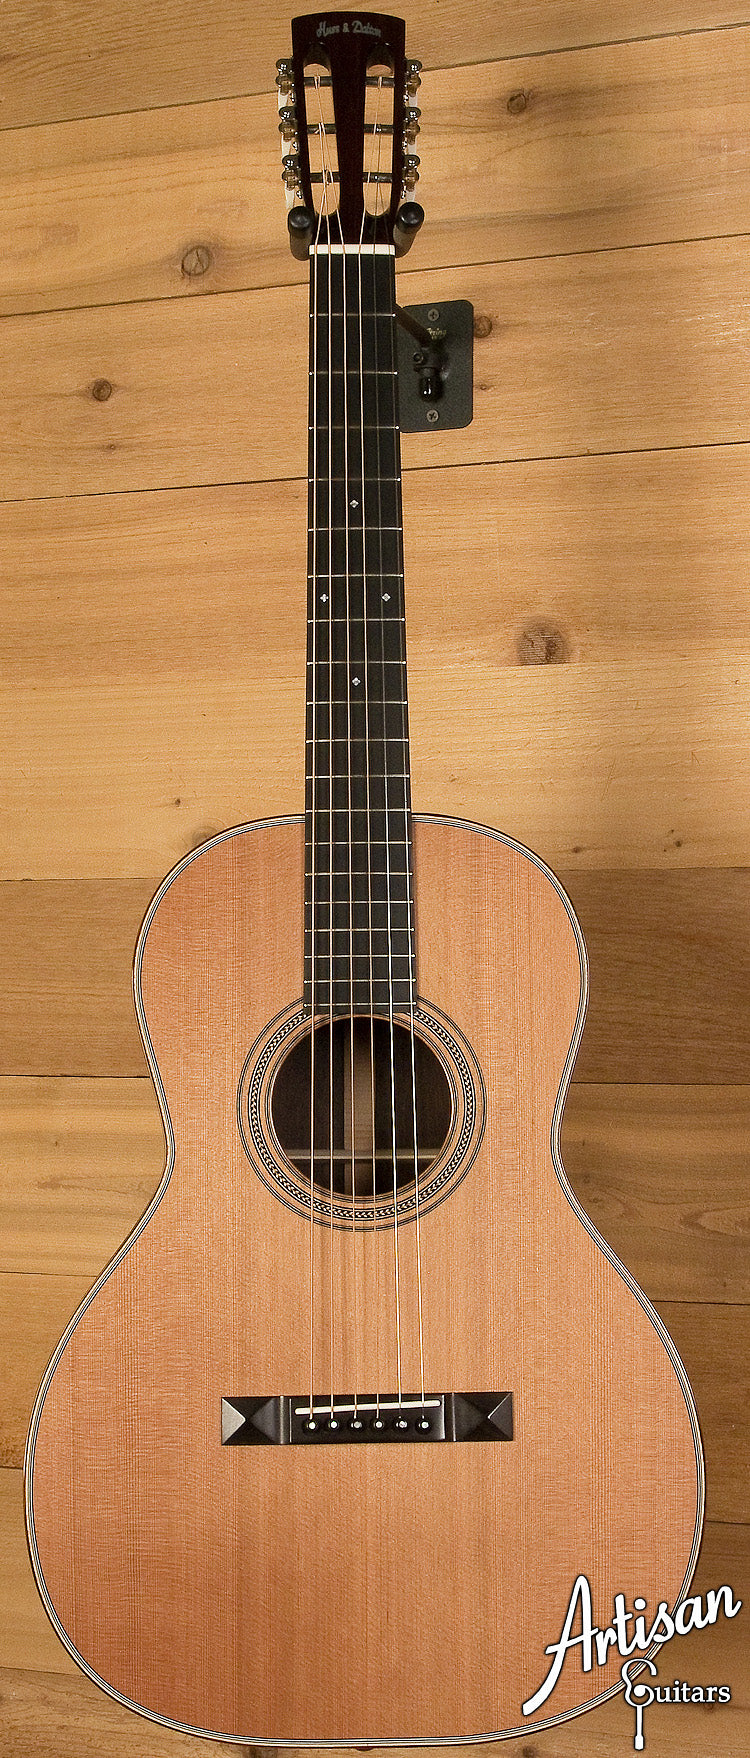 2004 Huss and Dalton 00SP Custom Cedar and Indian Rosewood ID-6109 - Artisan Guitars